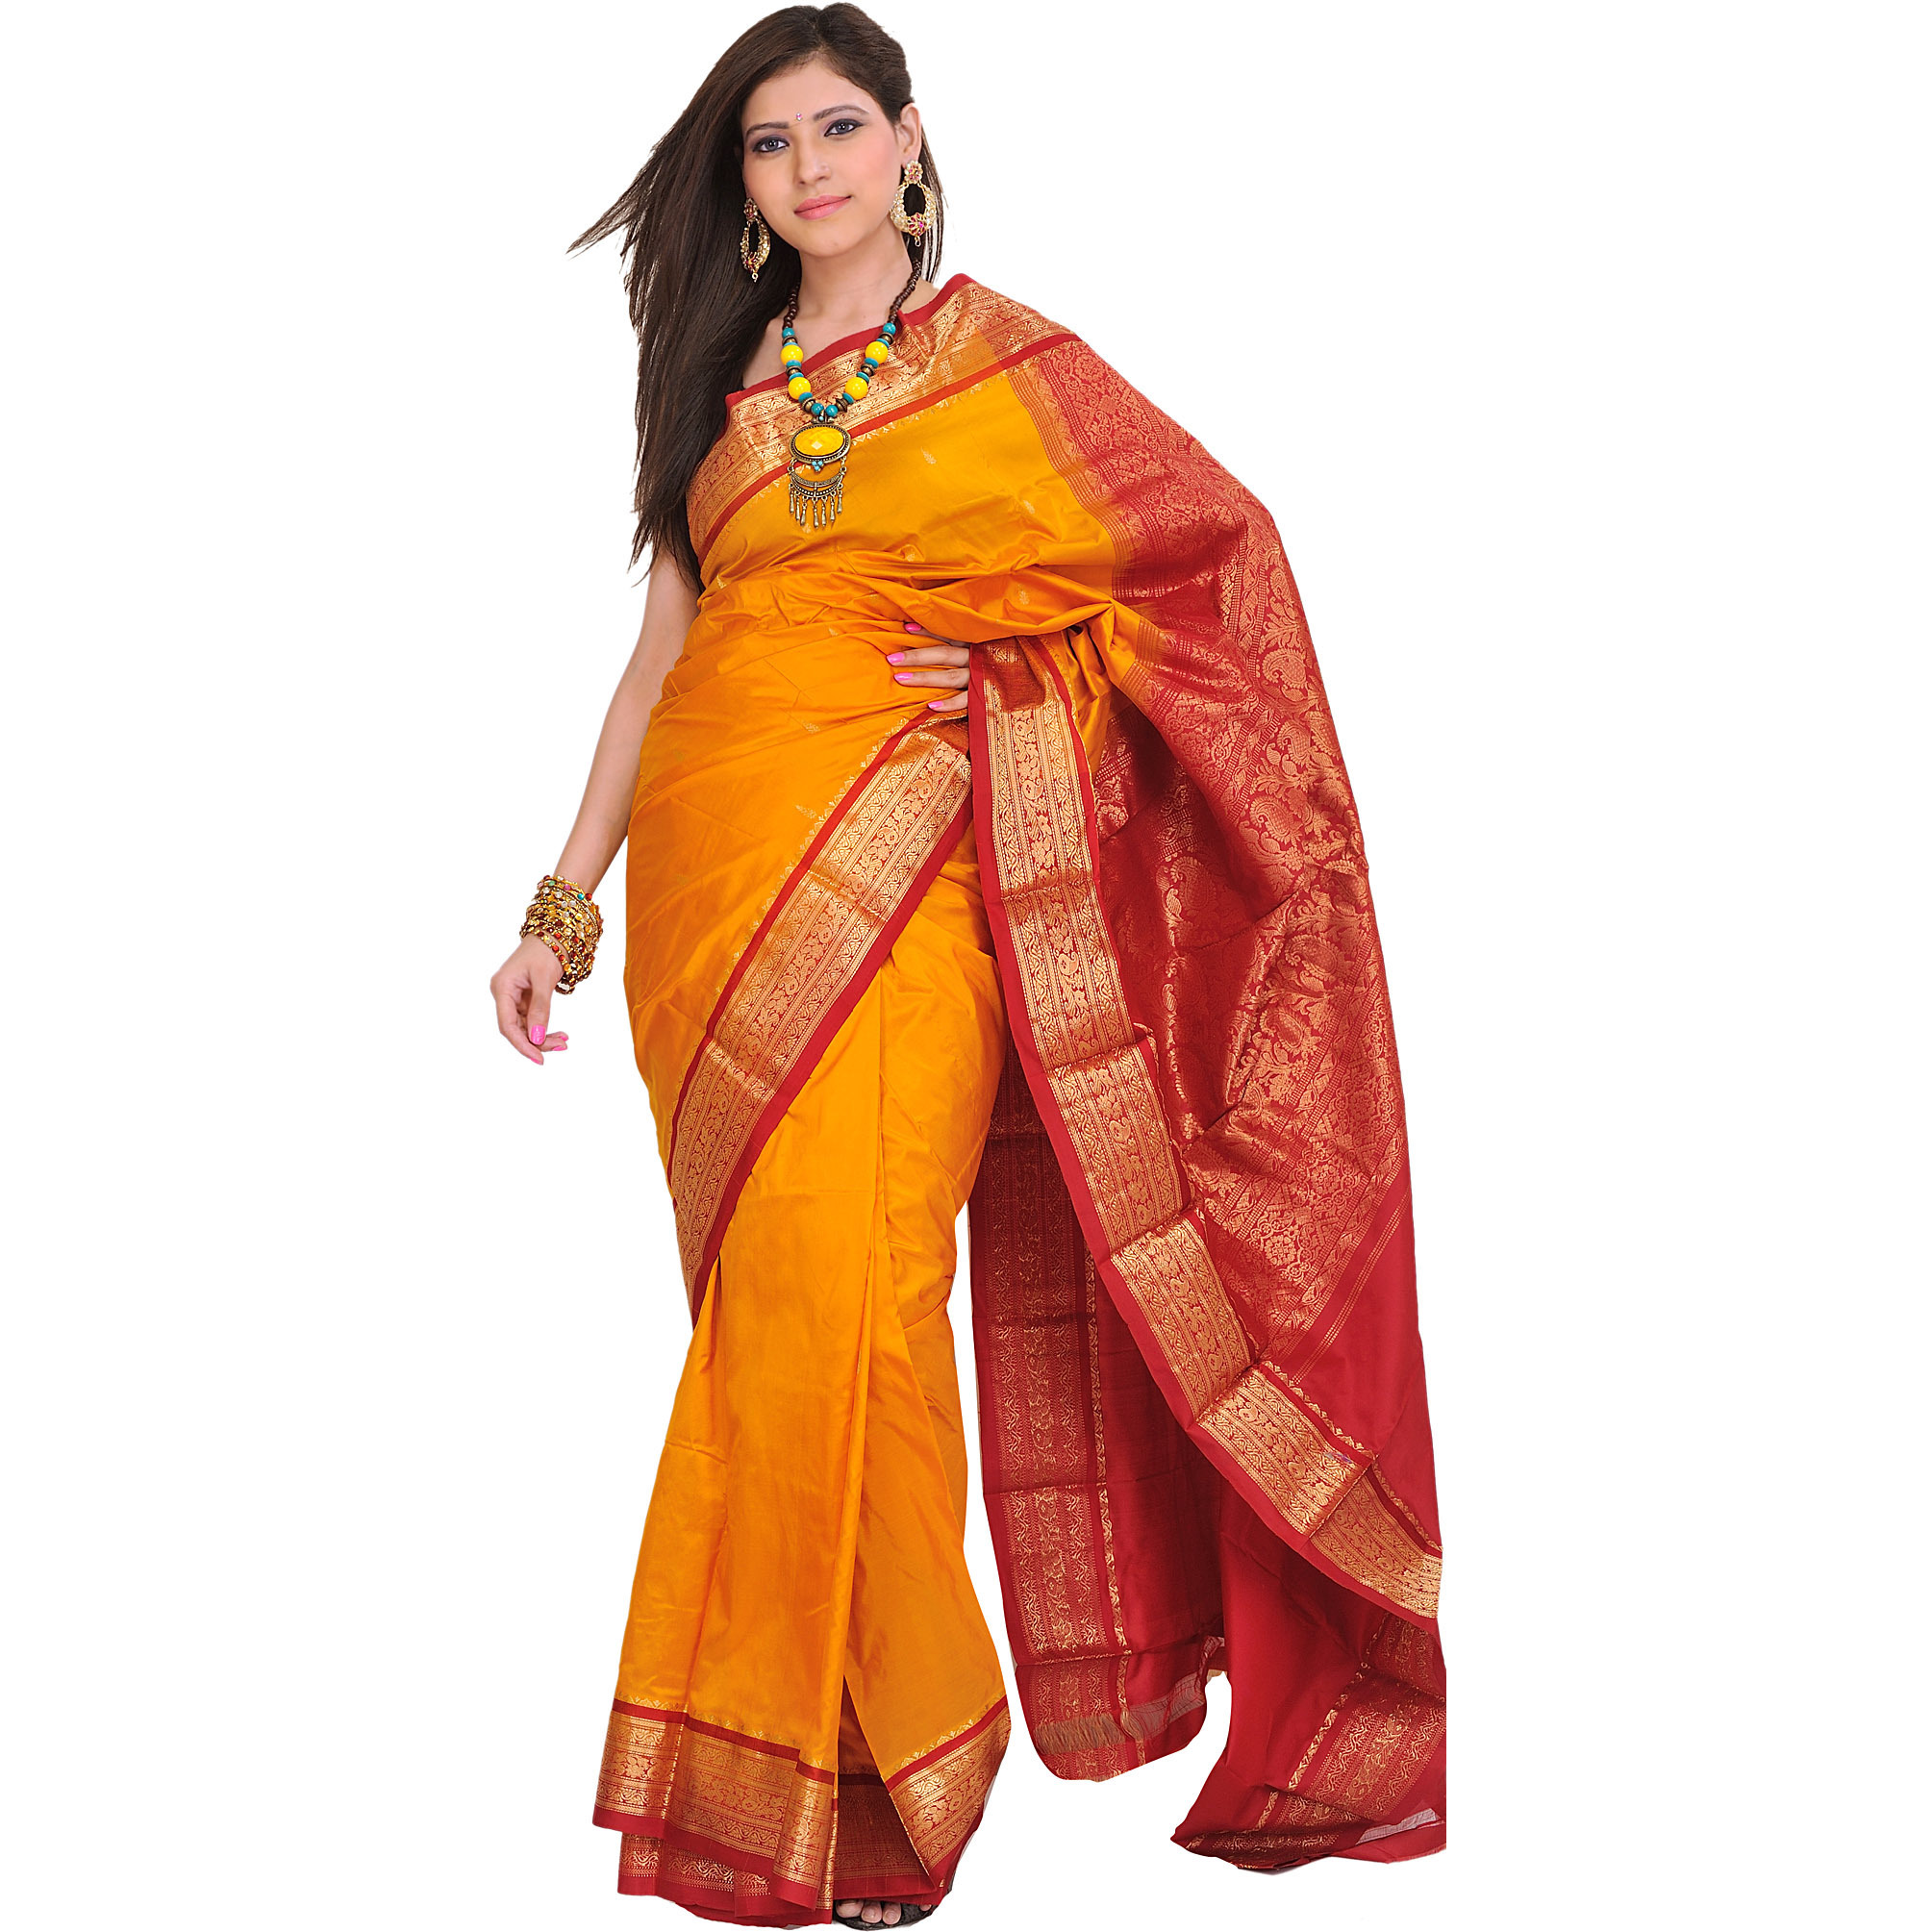 Golden-Glow Handloom Sari from Bangalore with Woven Paisleys on Aanchal